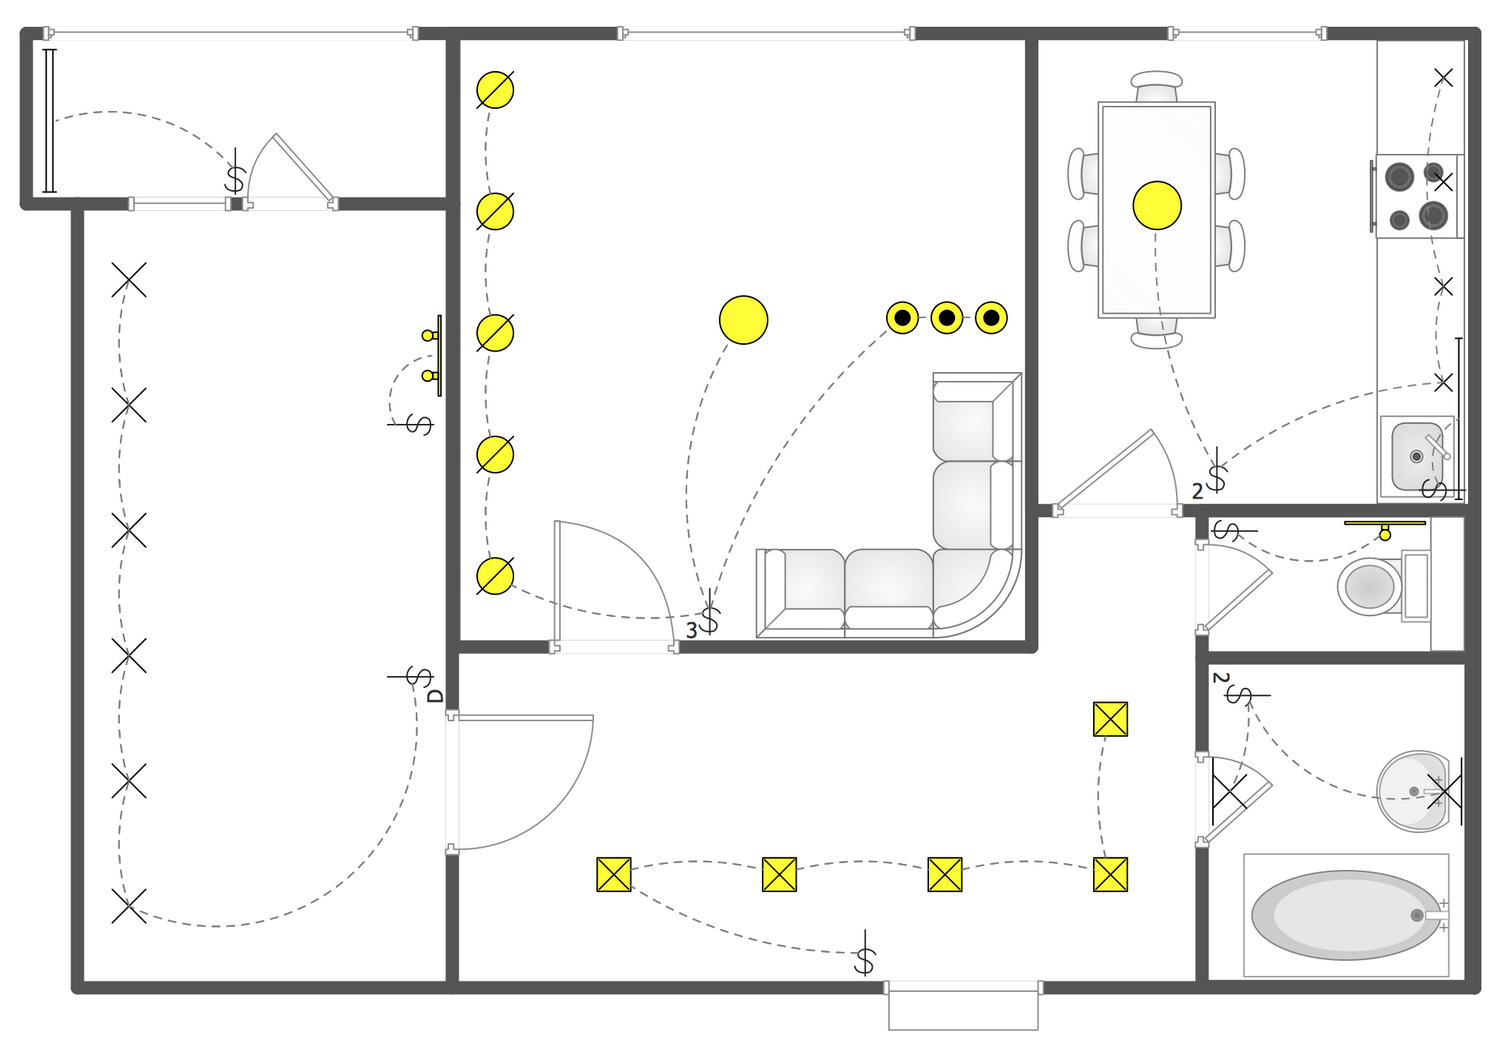 House Wiring For Ceiling